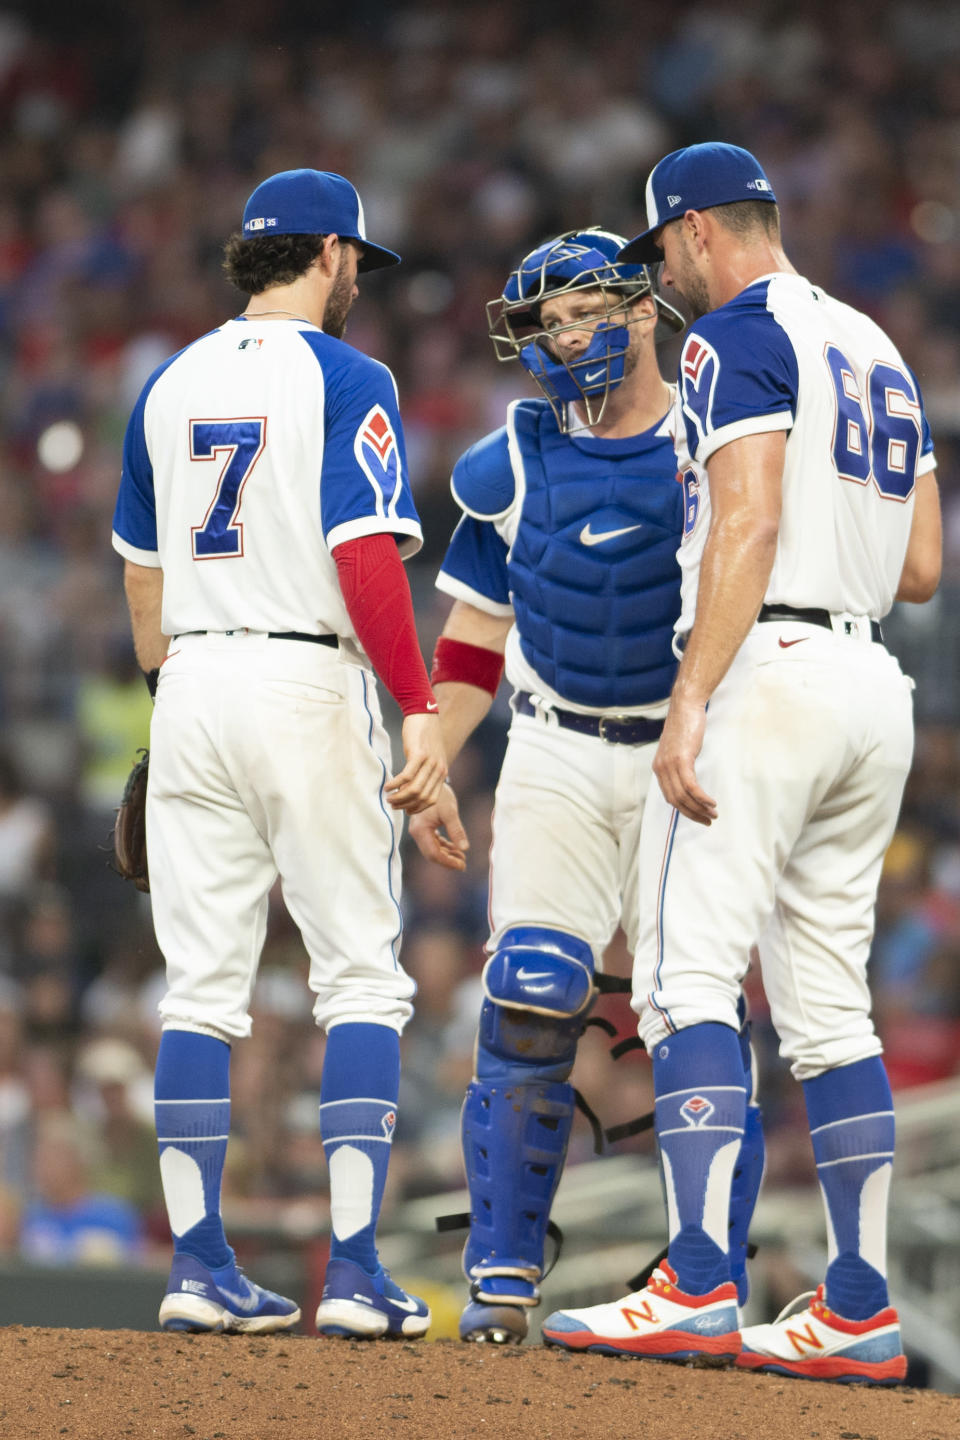 Atlanta Braves' Stephen Vogt, center, and Dansby Swanson, left, visit pitcher Kyle Muller (66) on mound during the fourth inning of a baseball game against the Milwaukee Brewers, Saturday, July 31, 2021, in Atlanta. (AP Photo/Hakim Wright Sr.)